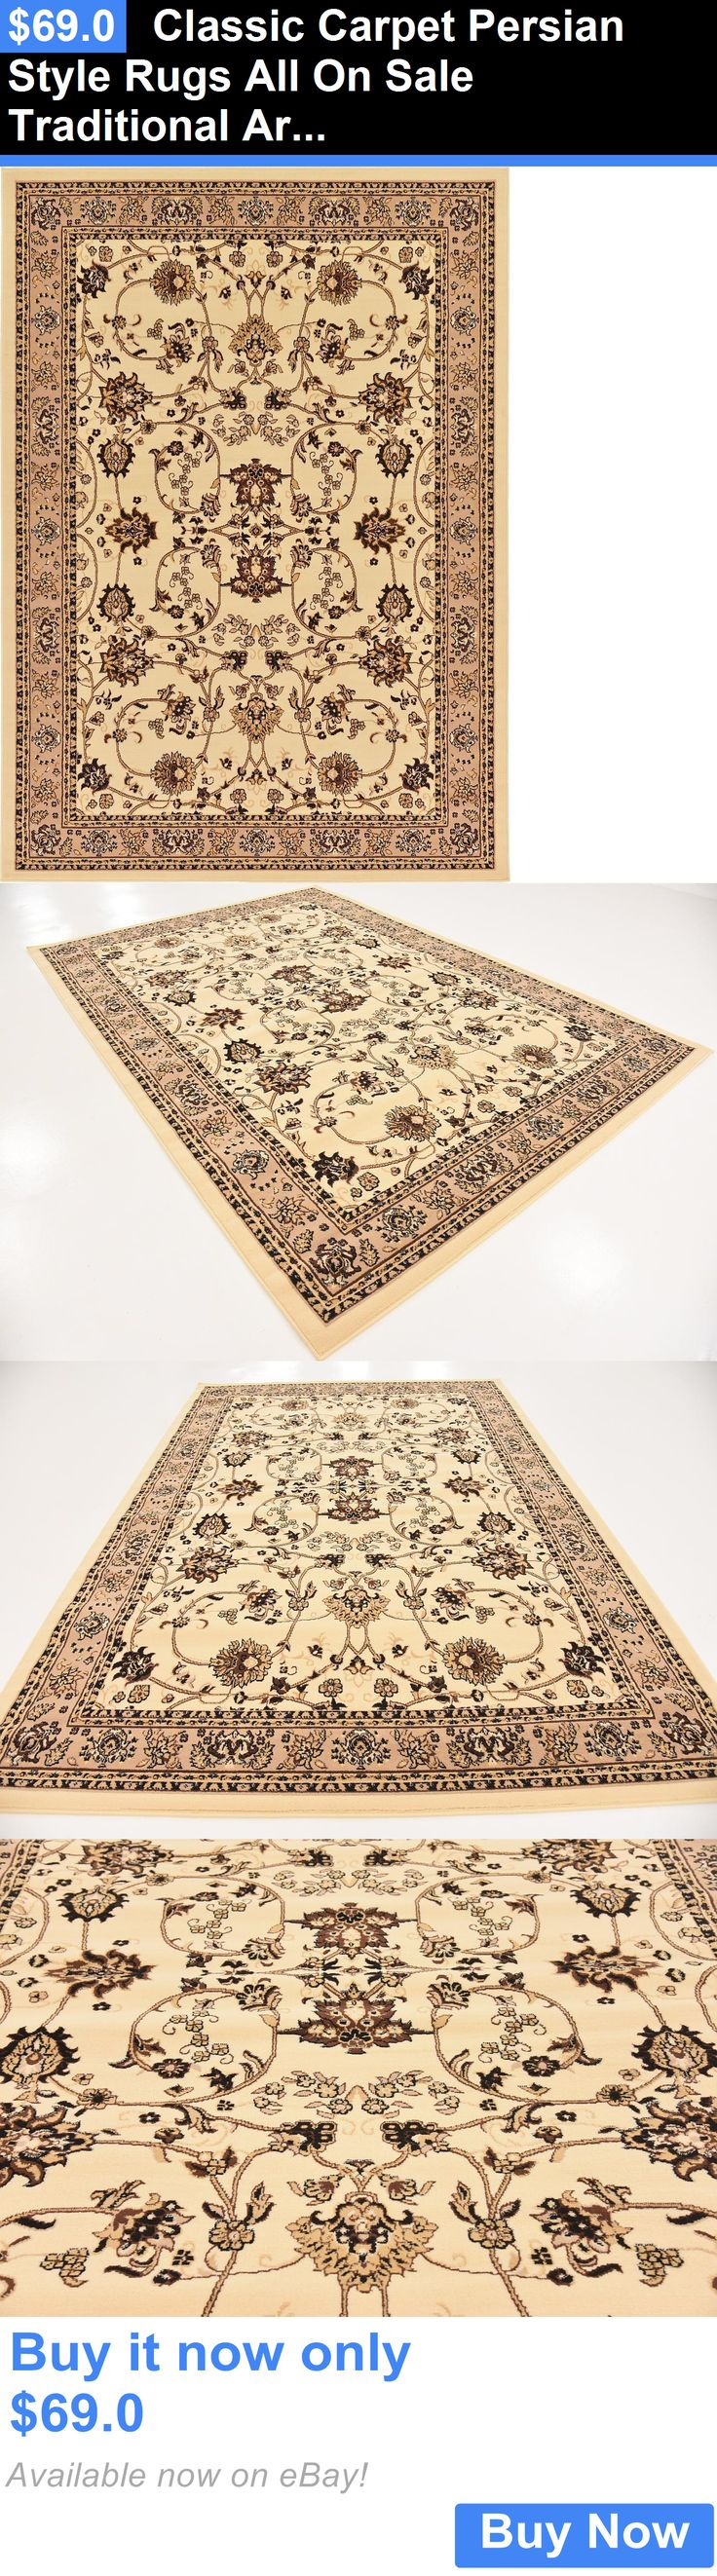 household items: Classic Carpet Persian Style Rugs All On Sale Traditional Area Rug Oriental Rugs BUY IT NOW ONLY: $69.0